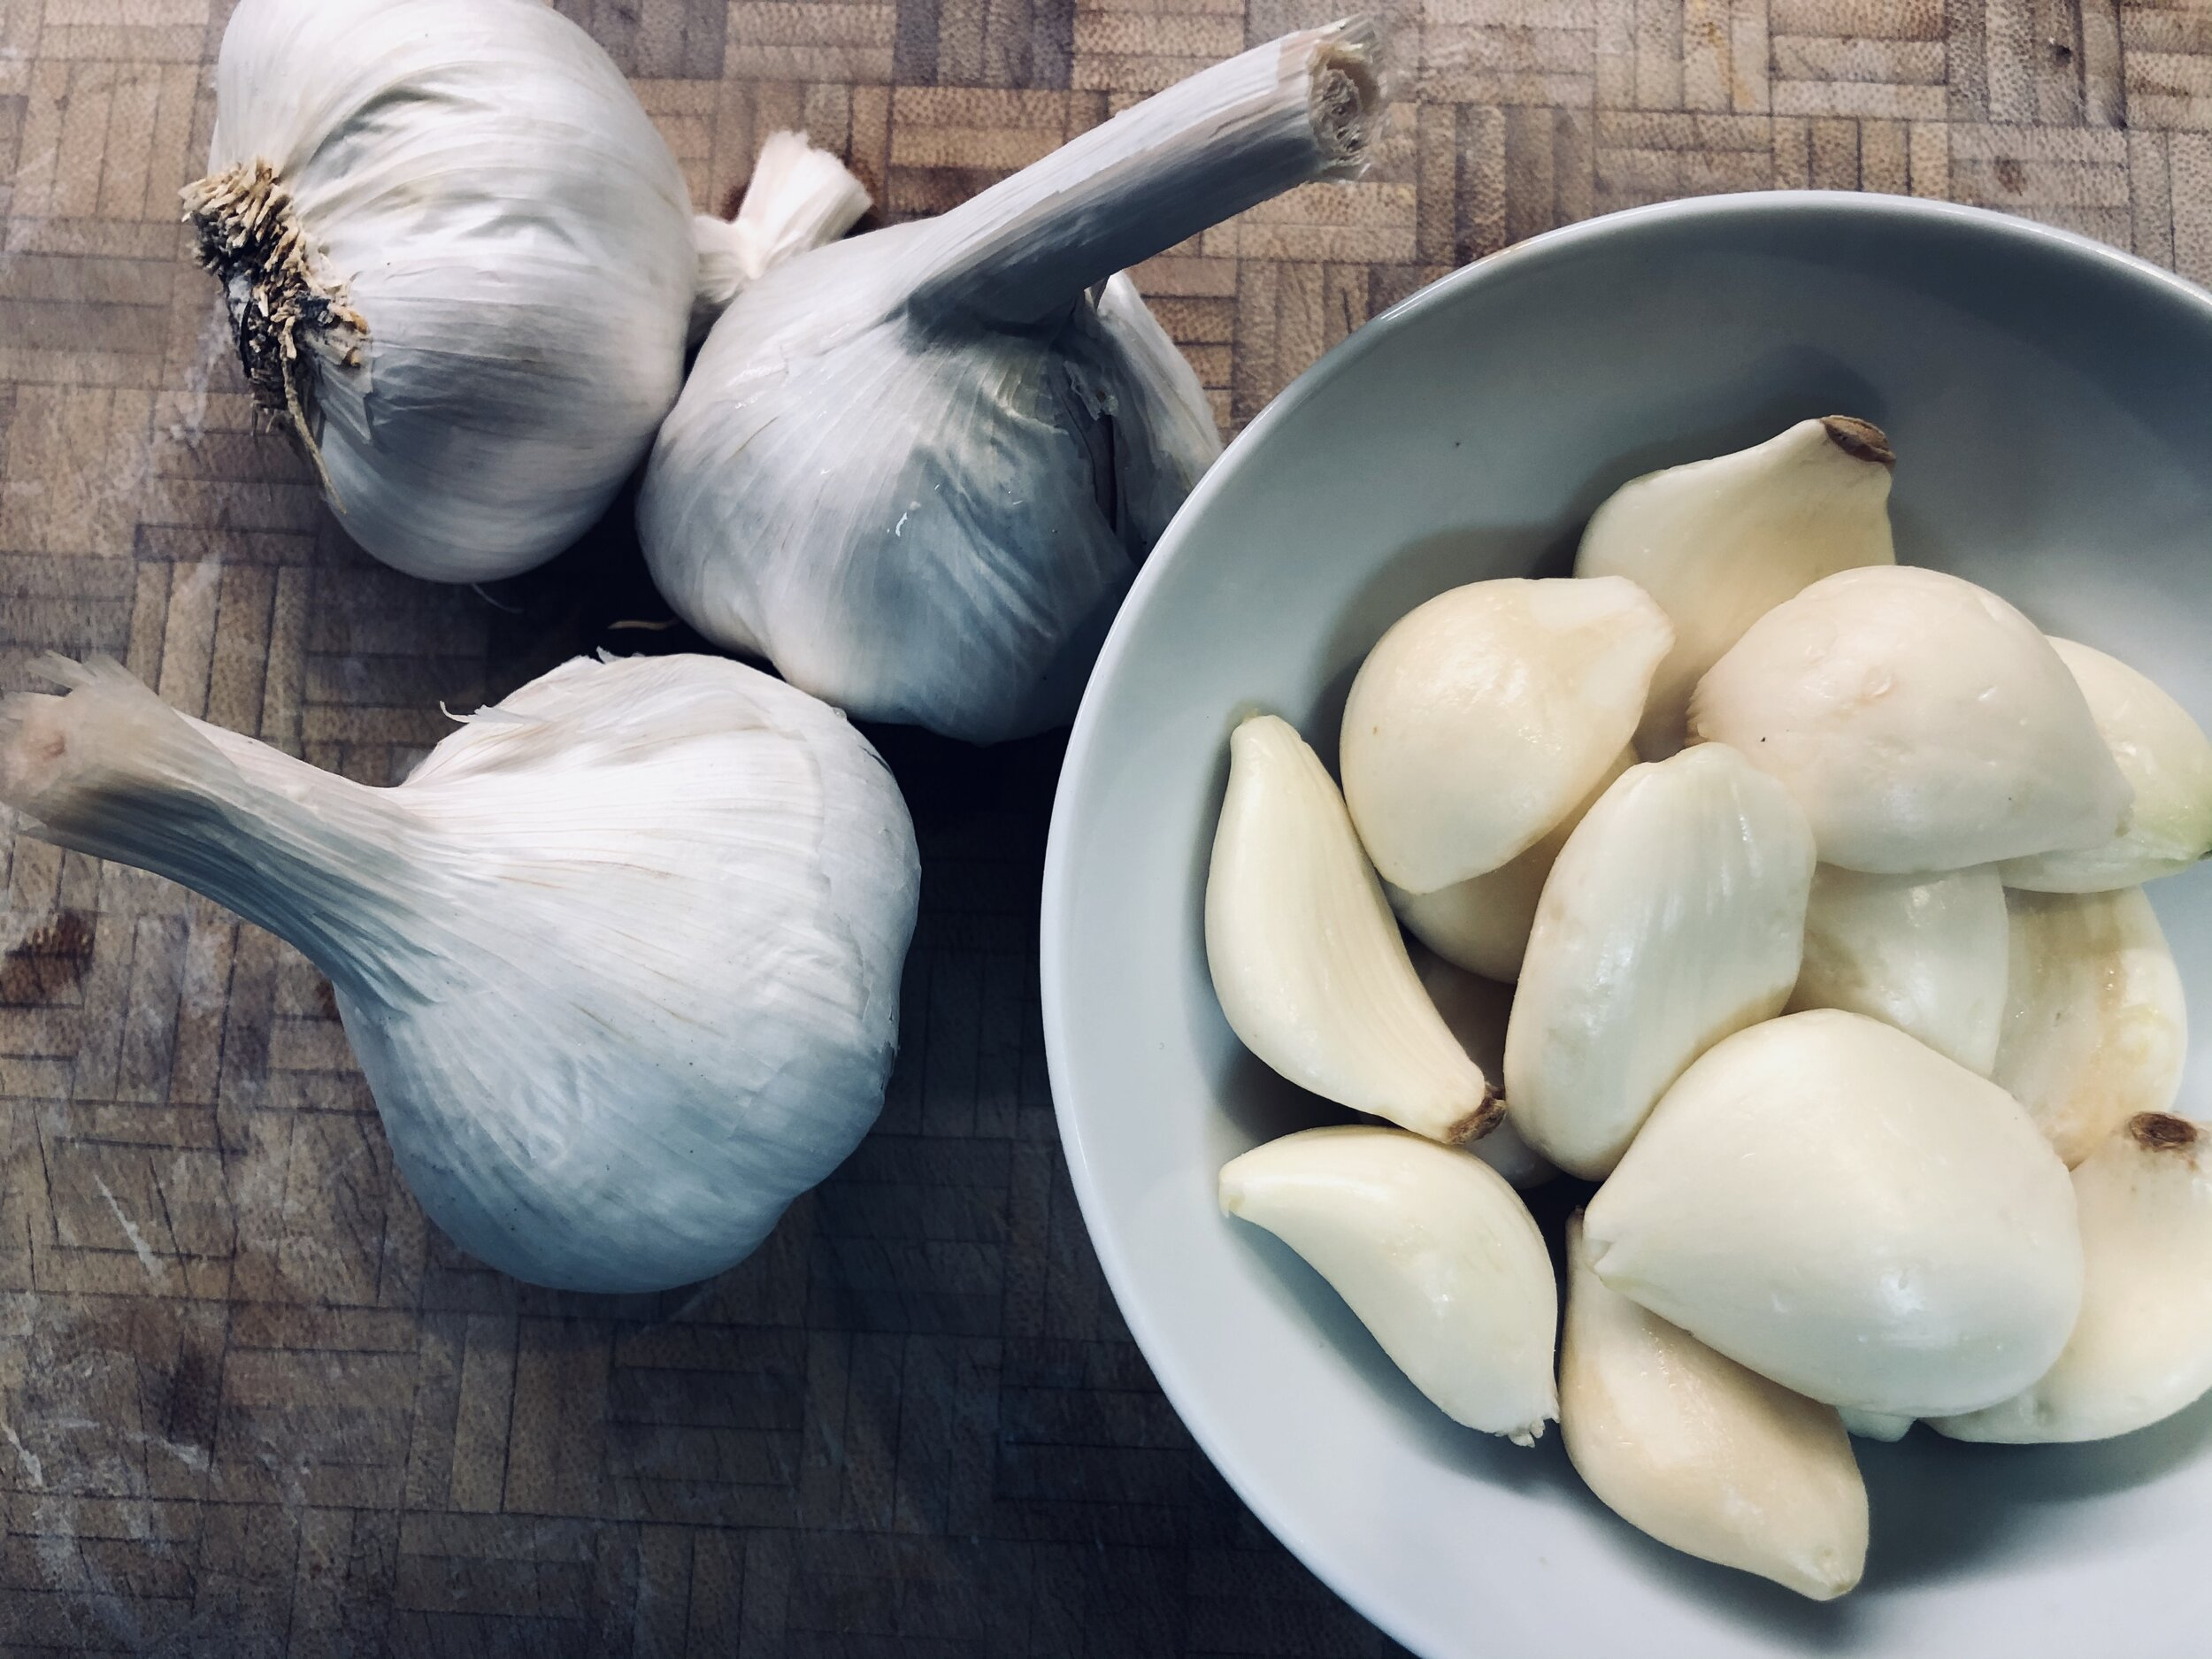 Bulbs of whole garlic and fresh garlic cloves